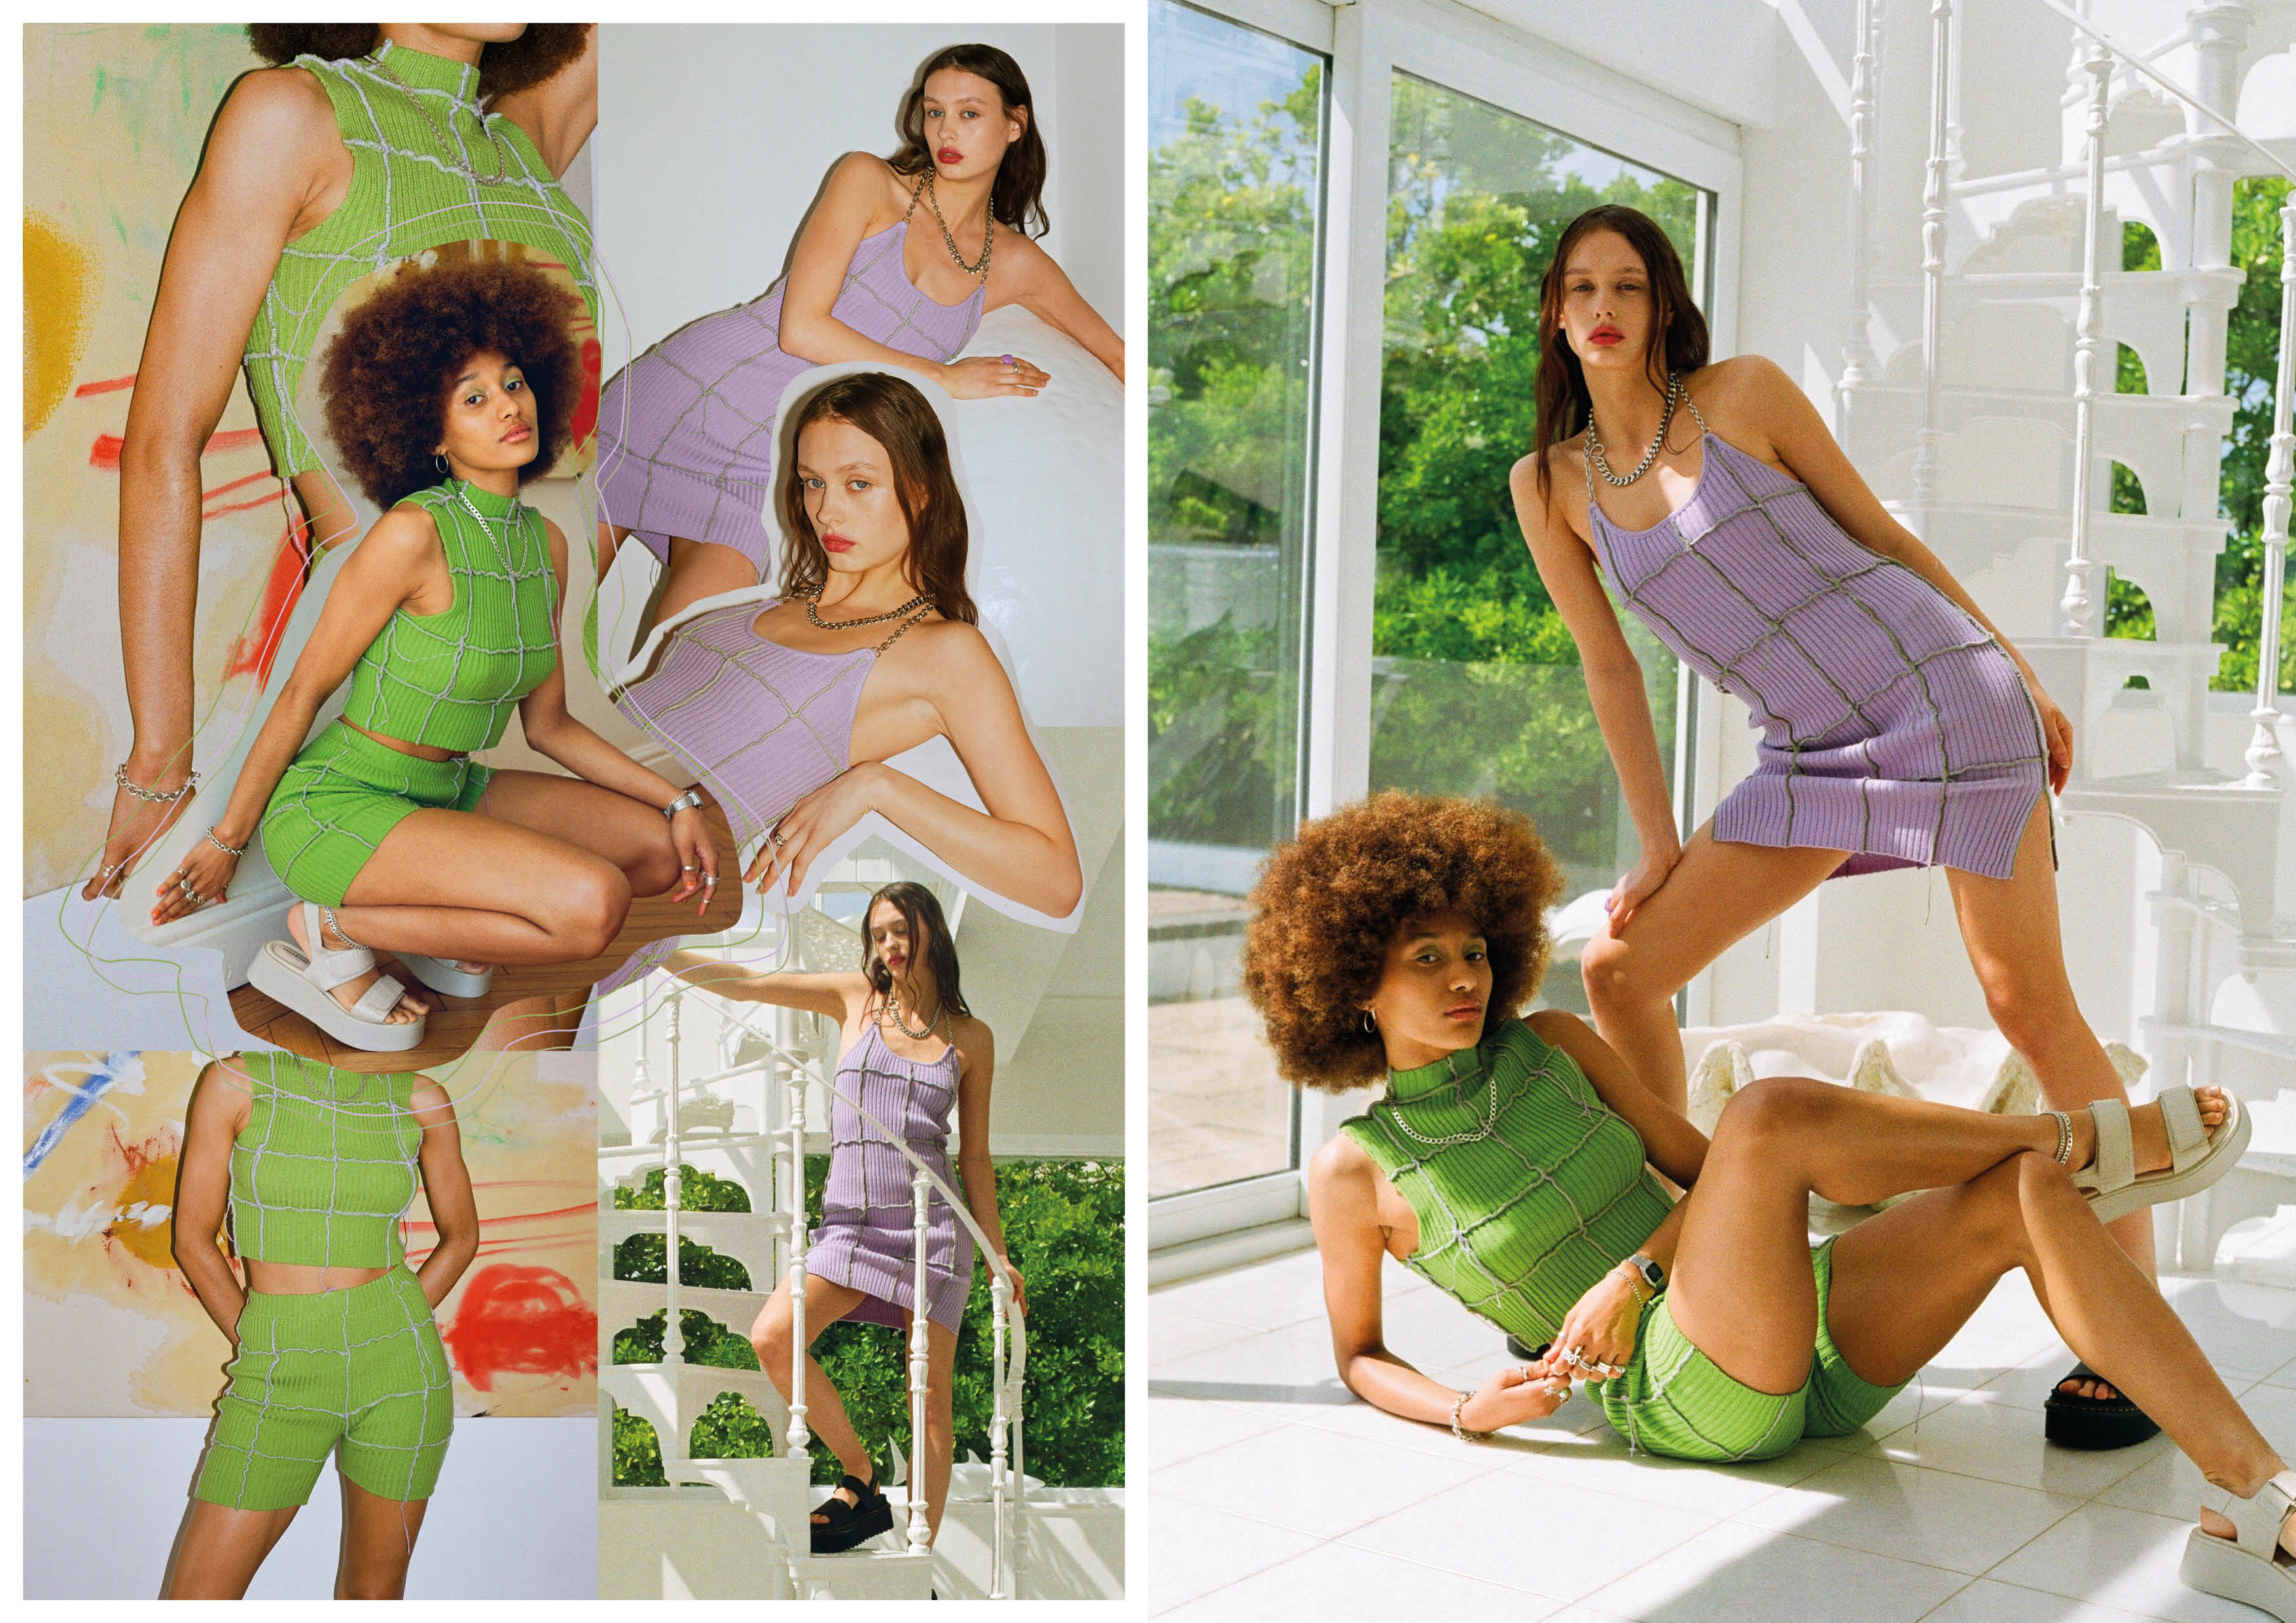 green overlocking panel cropped top and shorts and lilac overlocking panel dress with chain halter neck